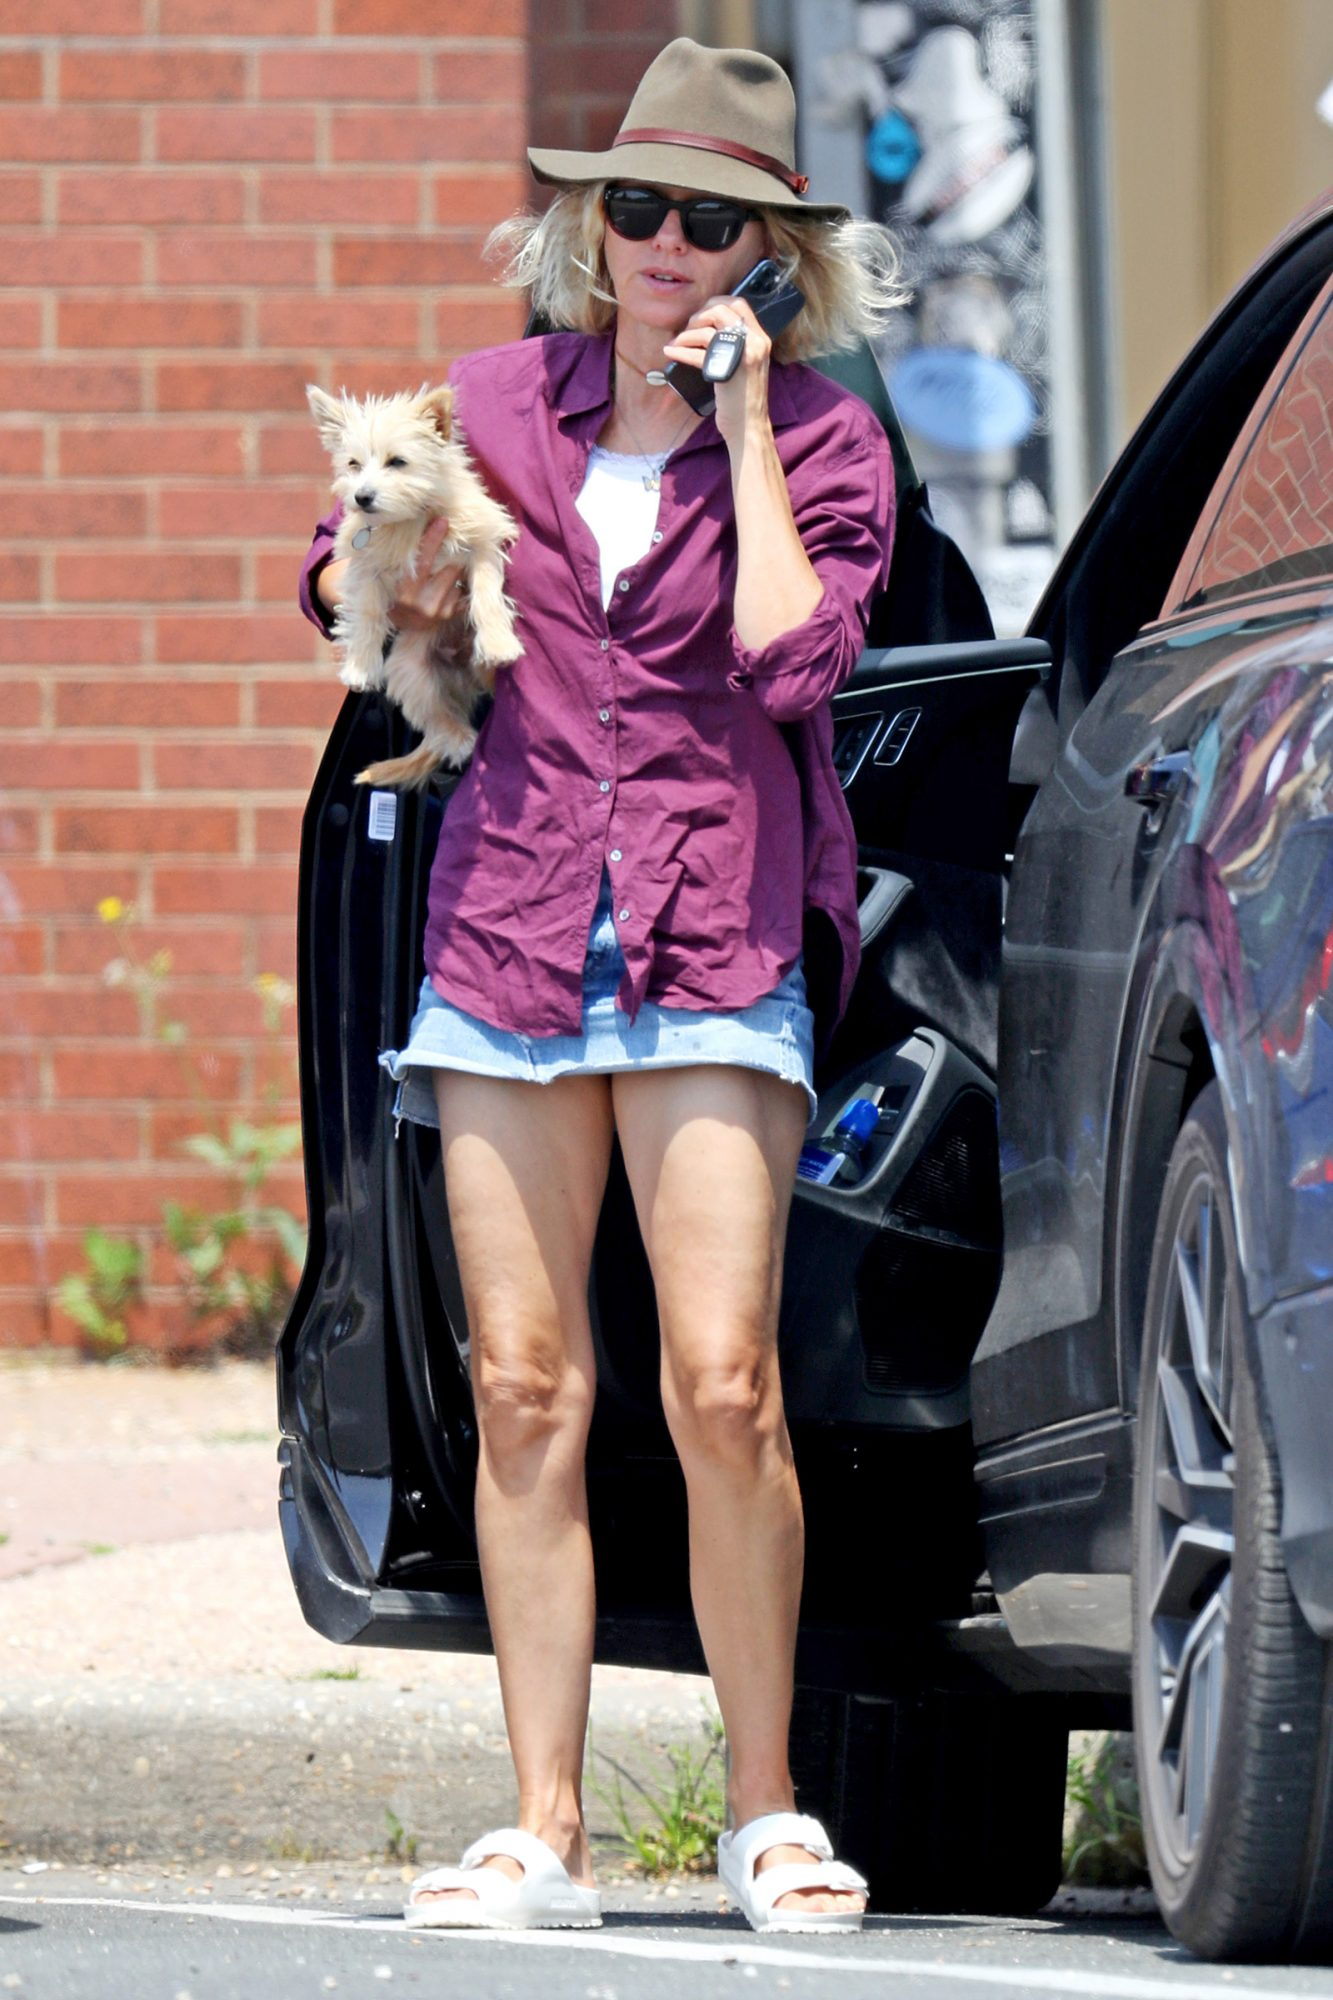 Naomi Watts is Pictured Out and About in The Hamptons With Her Dog.